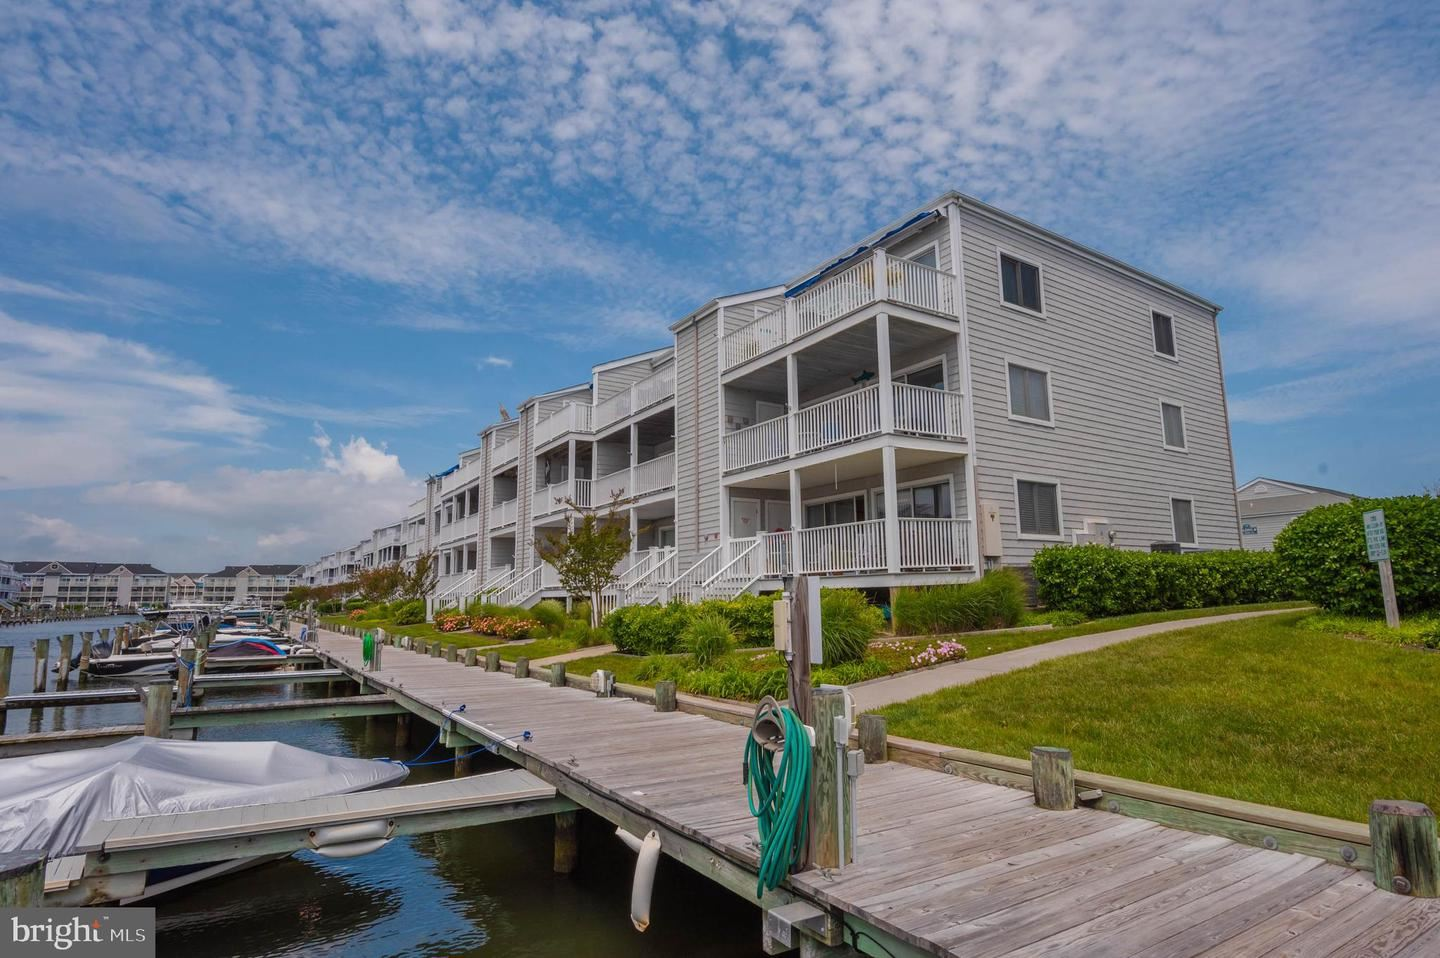 Photo for JAMAICA AVE-12401 JAMAICA AVE #267 Q, OCEAN CITY, MD 21842 (MLS # MDWO113998)